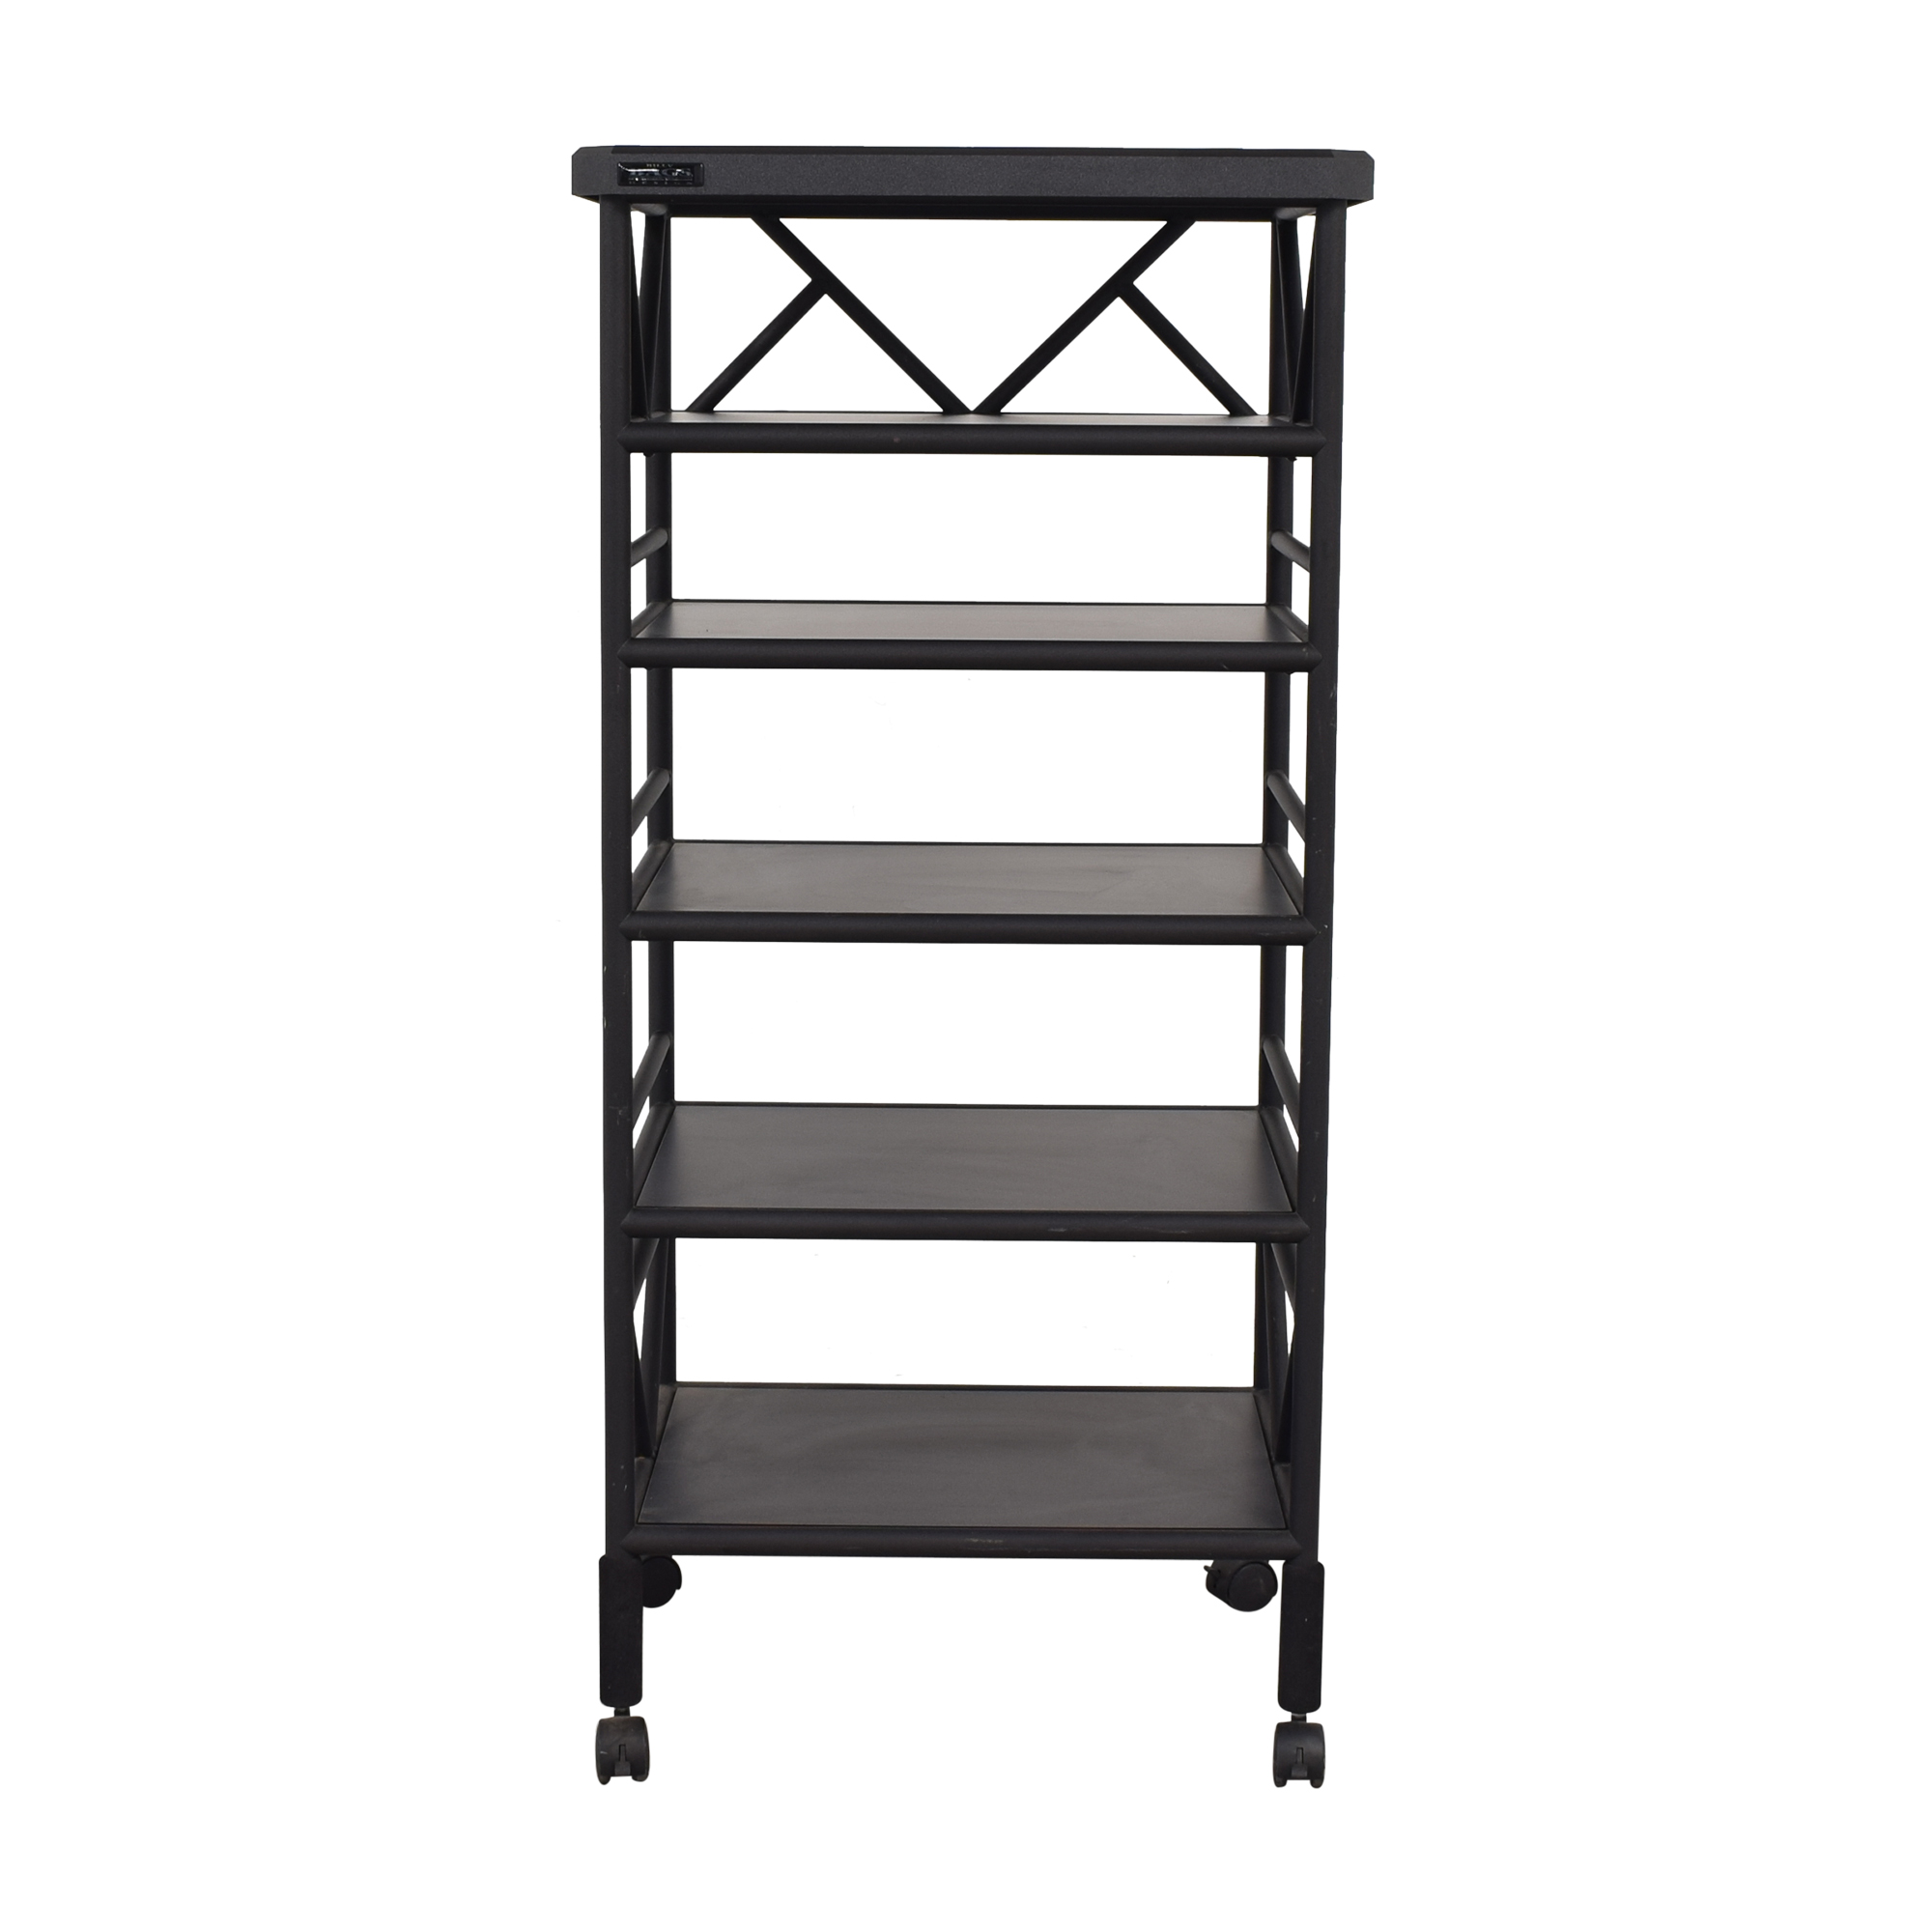 Billy Bags Billy Bags Pro-Stand Media Rack black